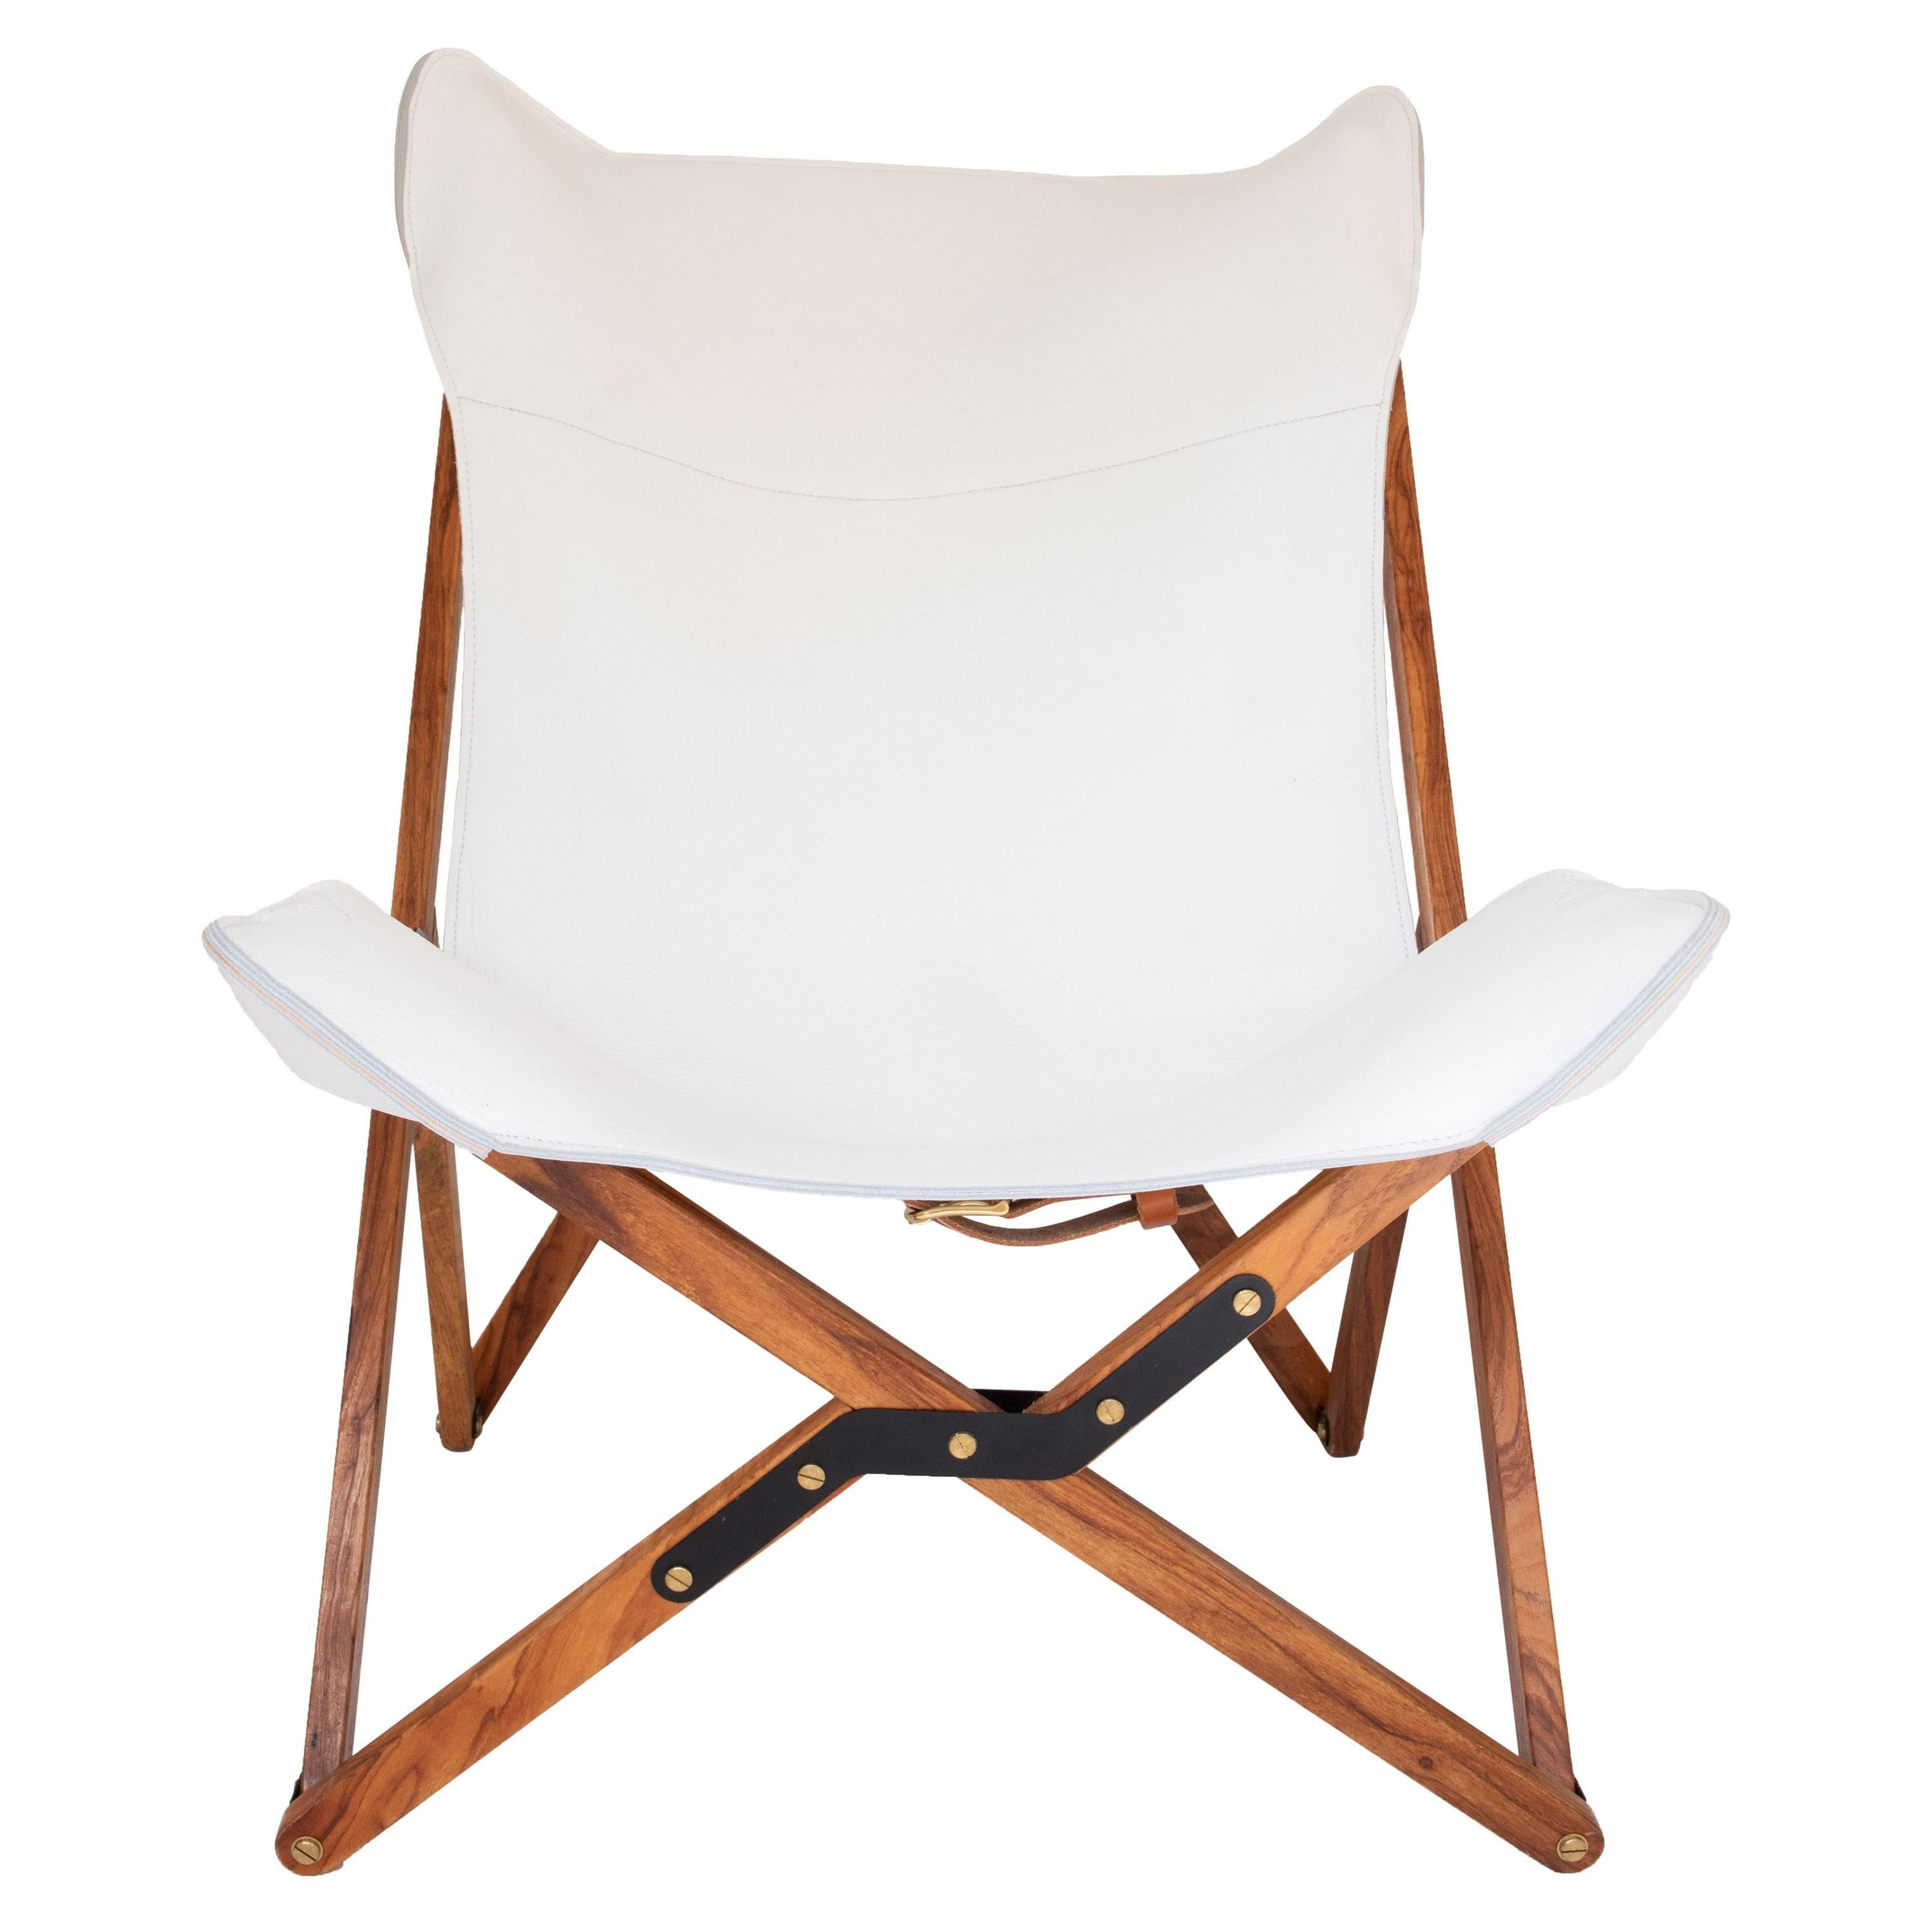 Humphrey Chair, Pecan Wood and Leather Folding Chair 'White'